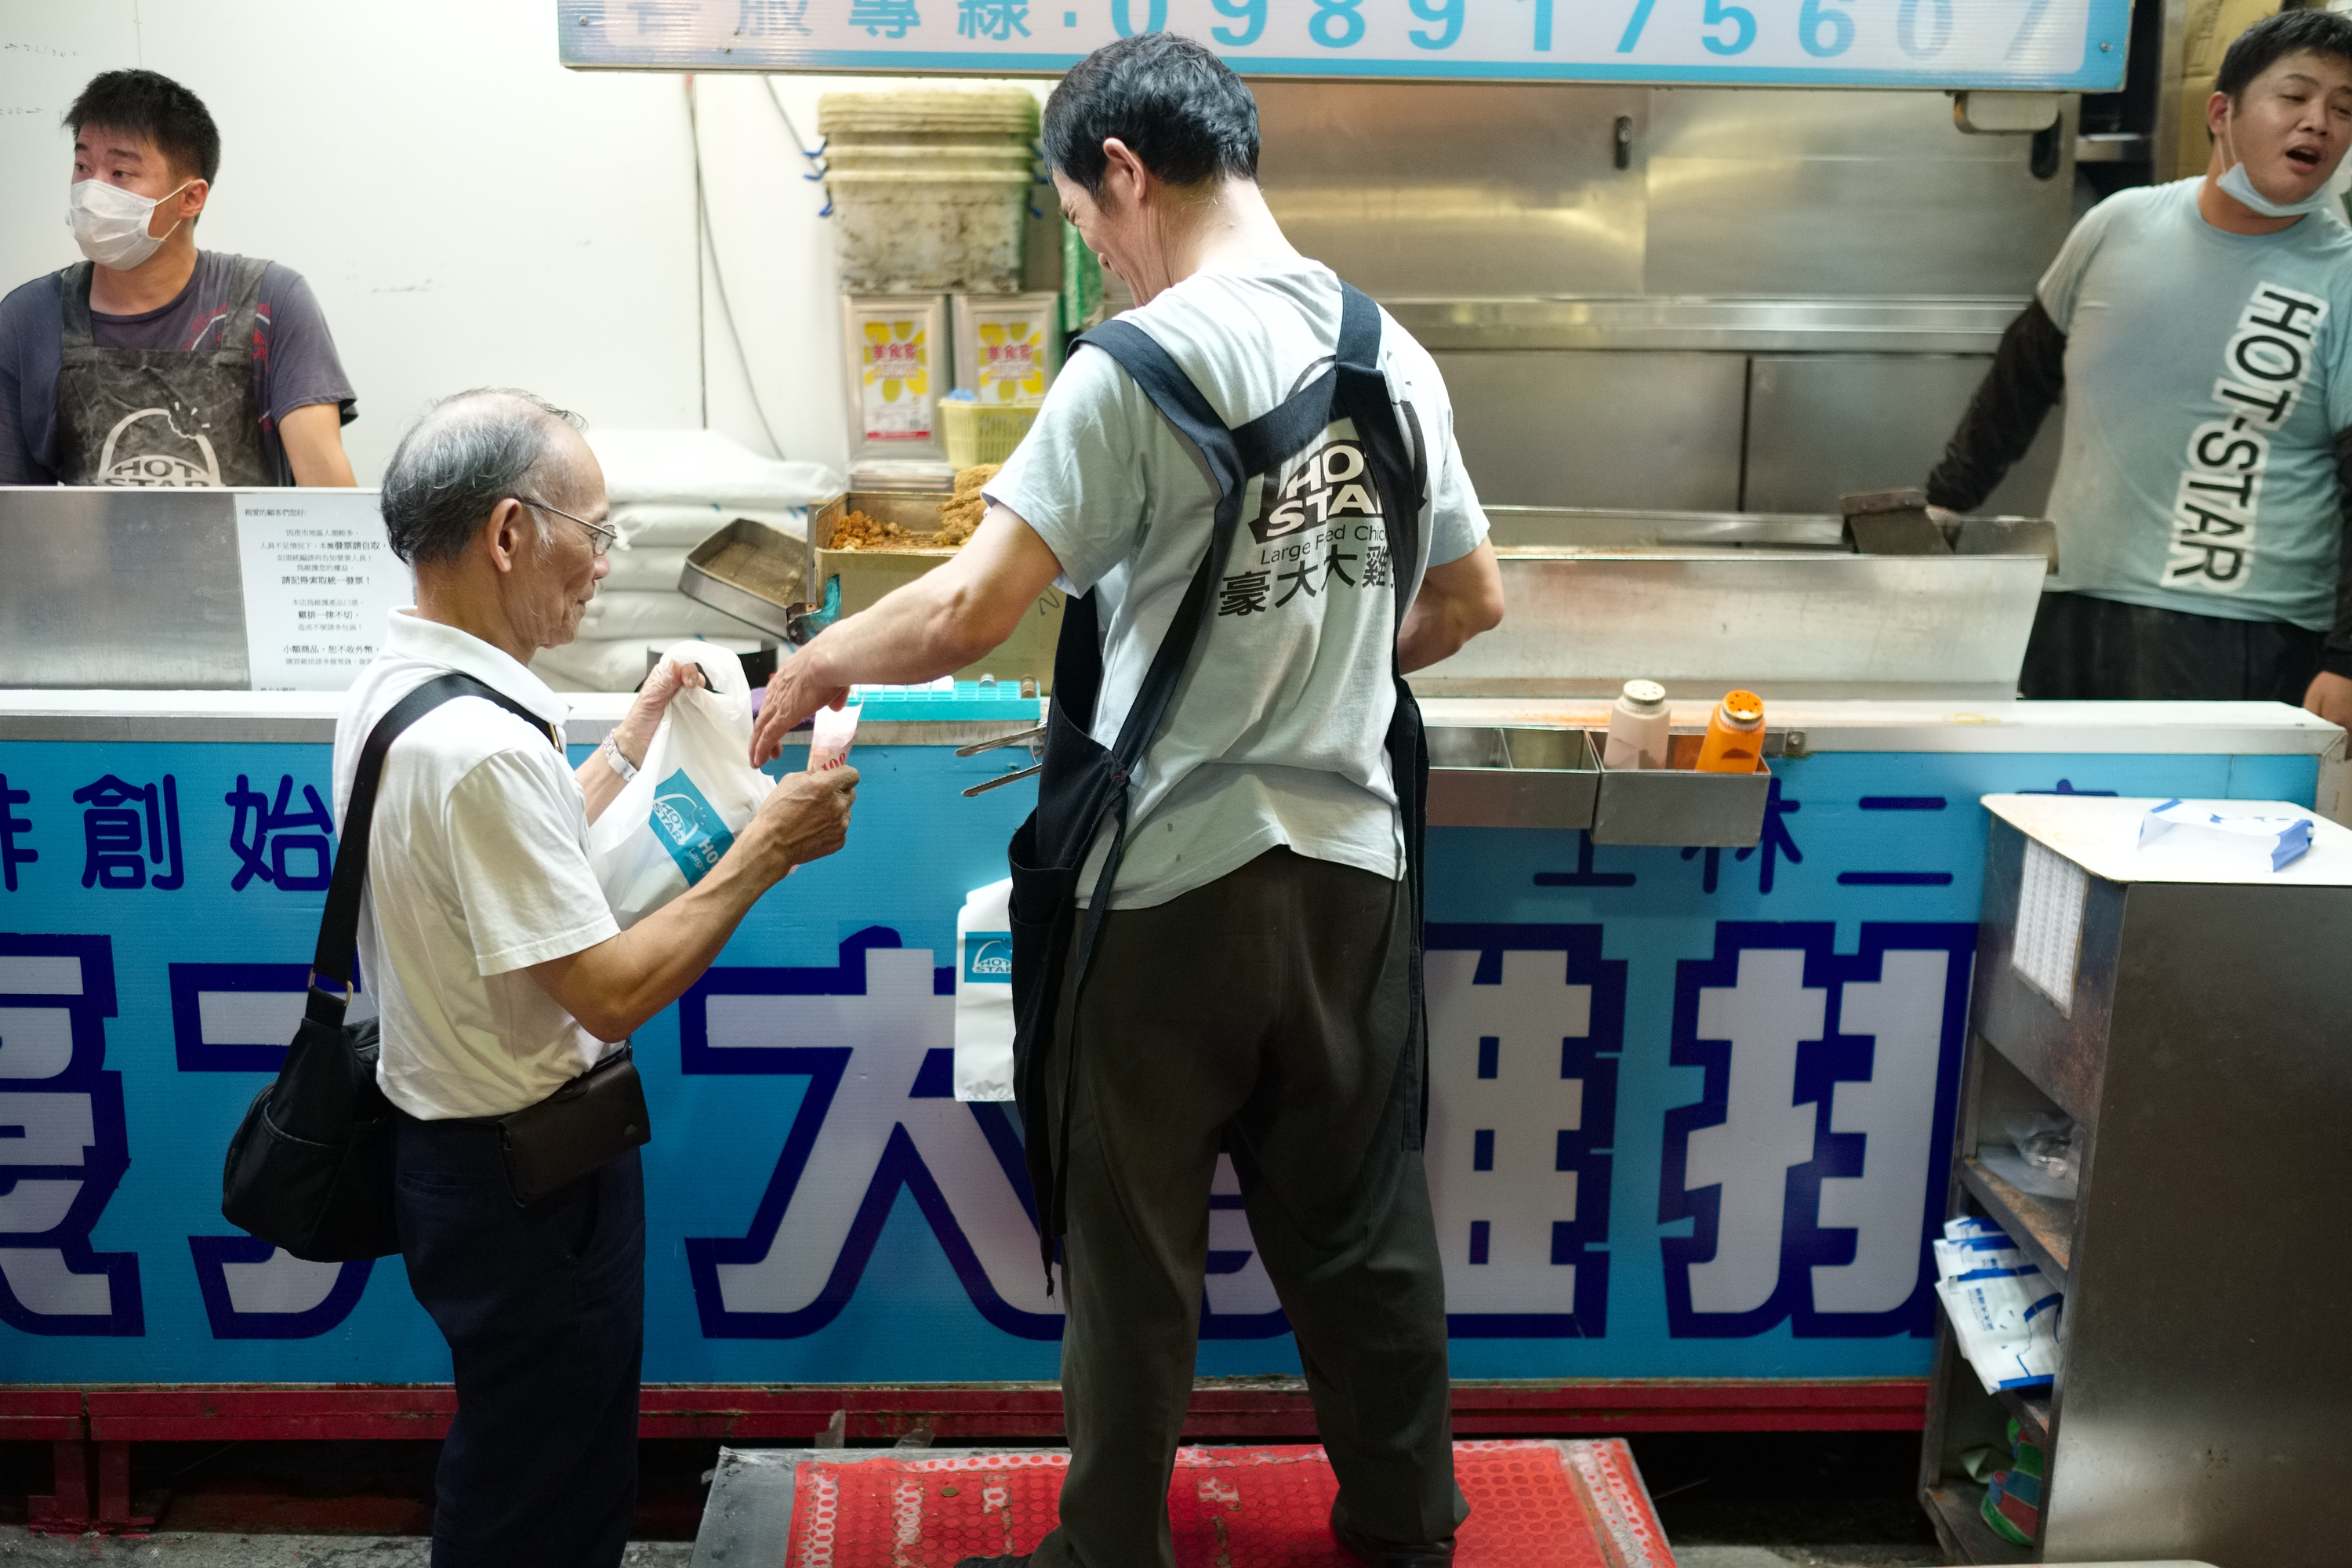 A customer receives their order of Hot Star chicken at Taipei's largest night market-Shilin